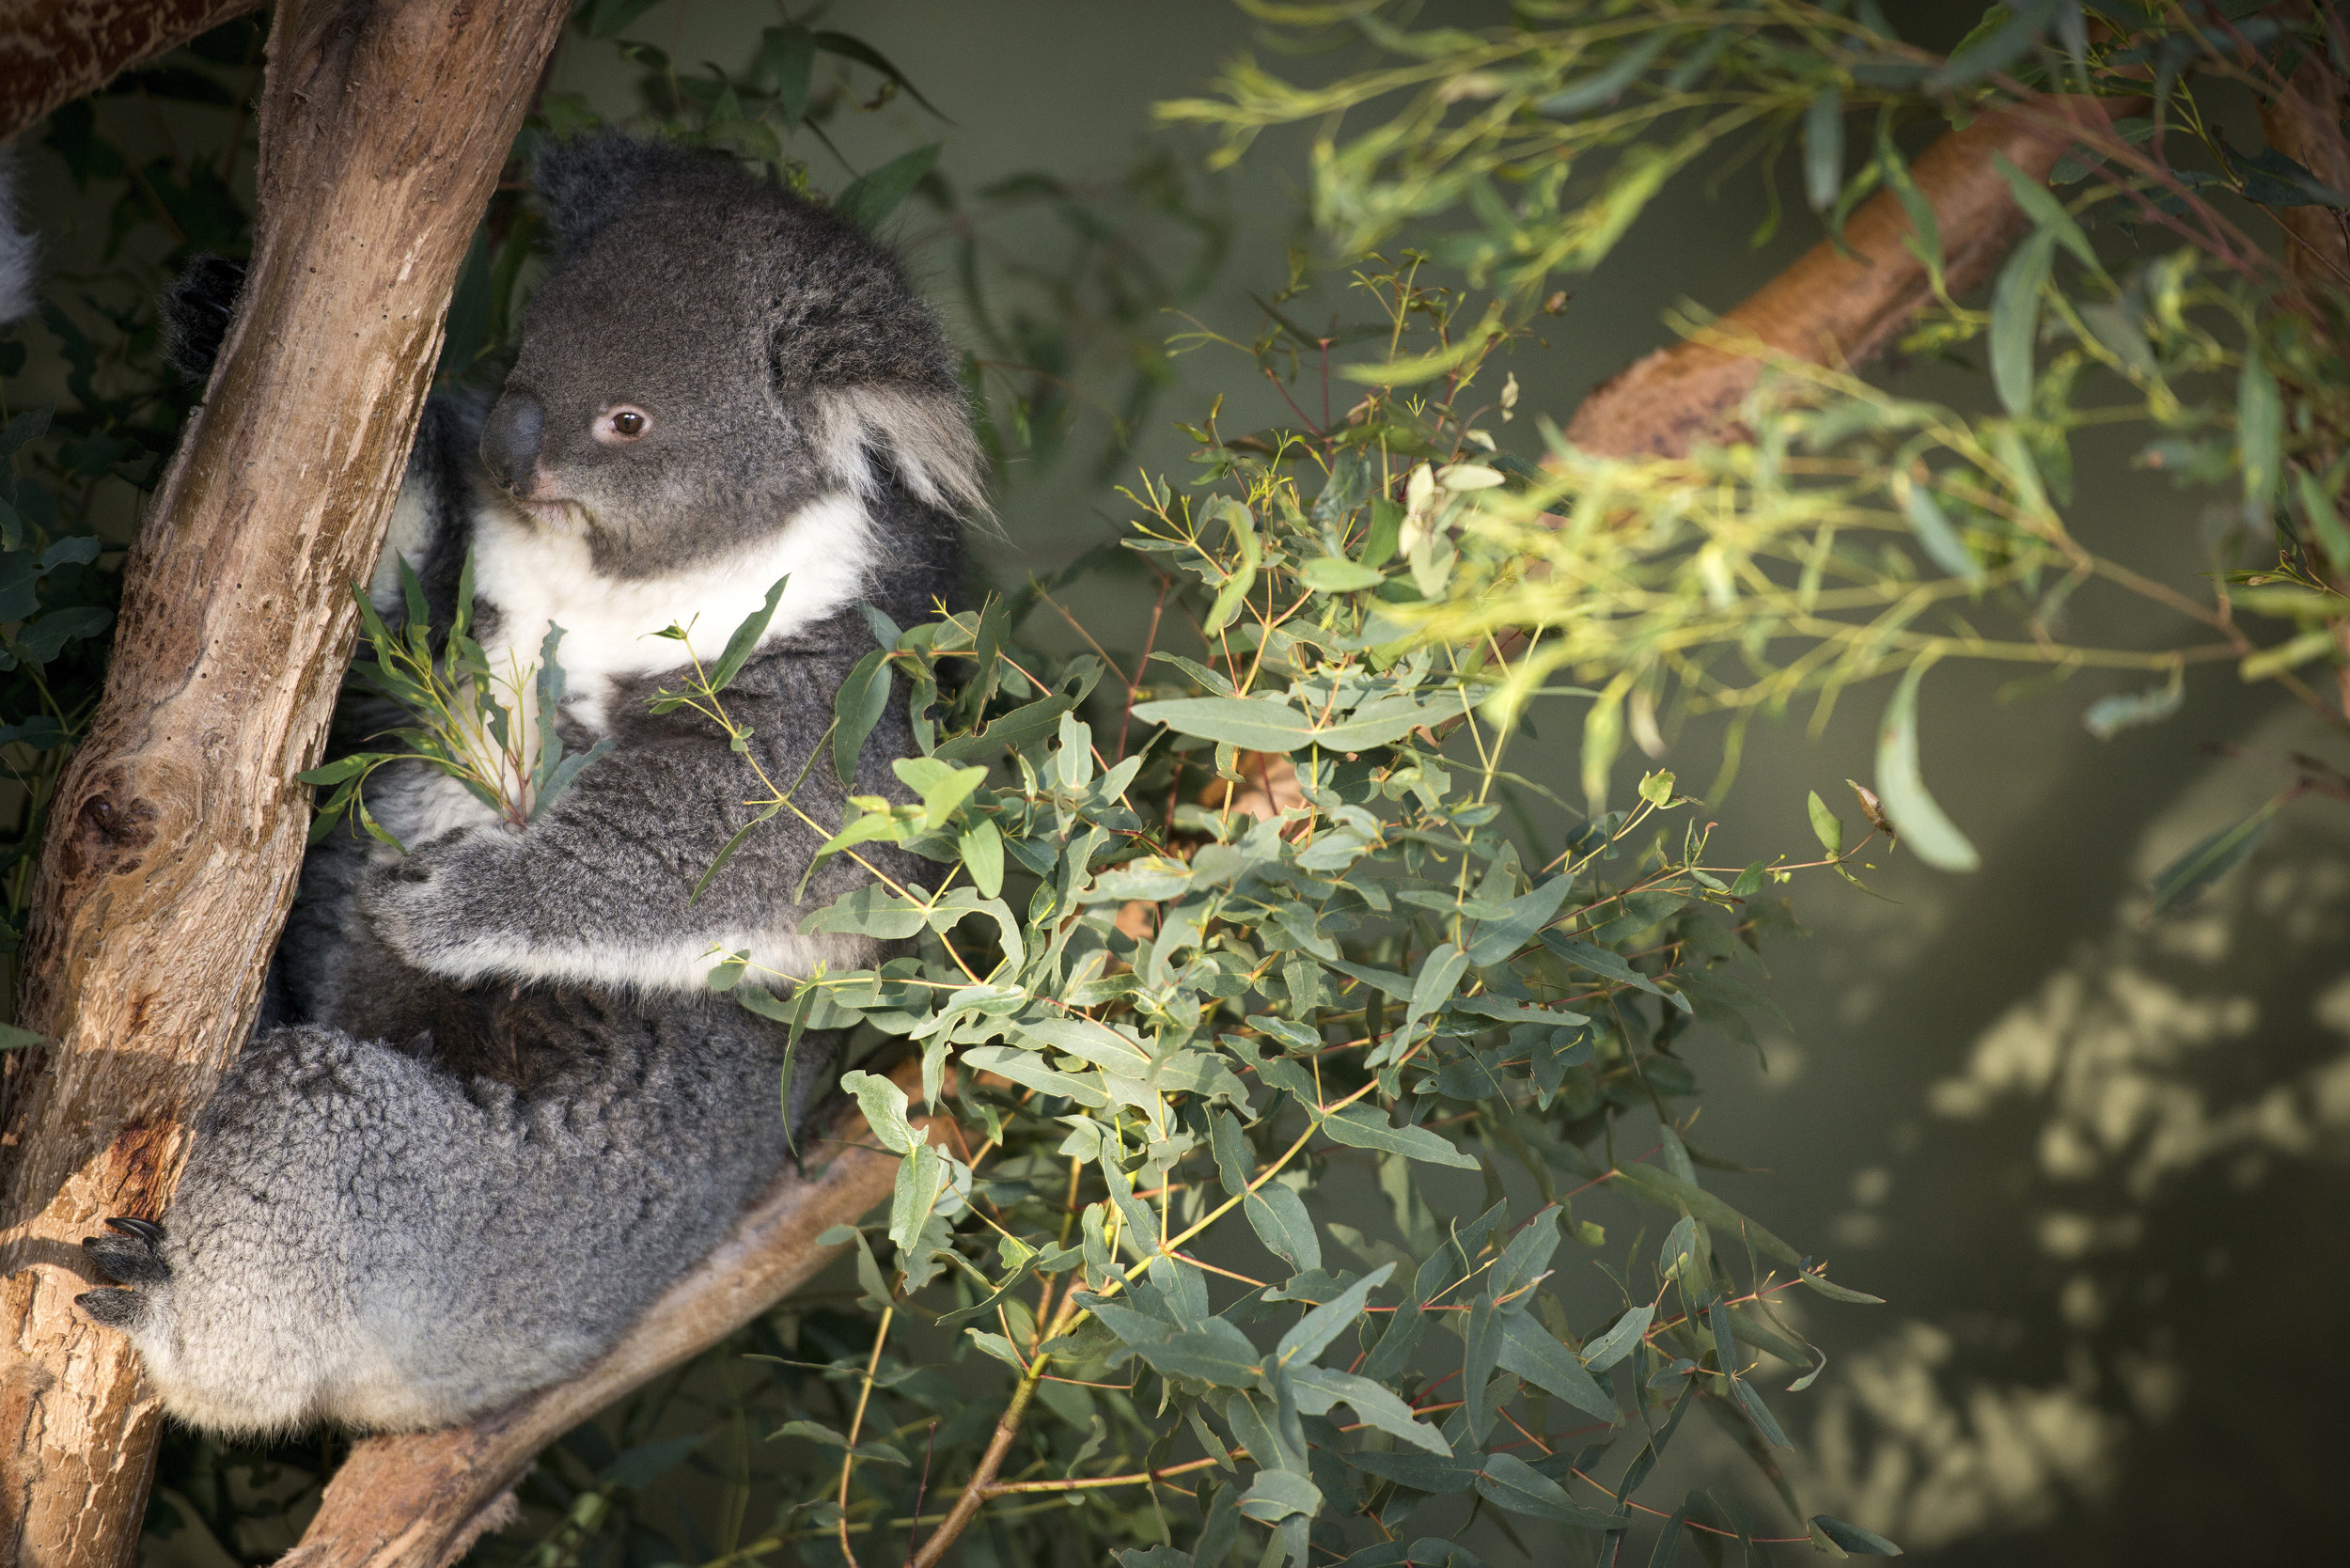 Koala. The rockstars of the bush. Their pretty chilled just doing their thing & they dont mind if you give them a little pat.